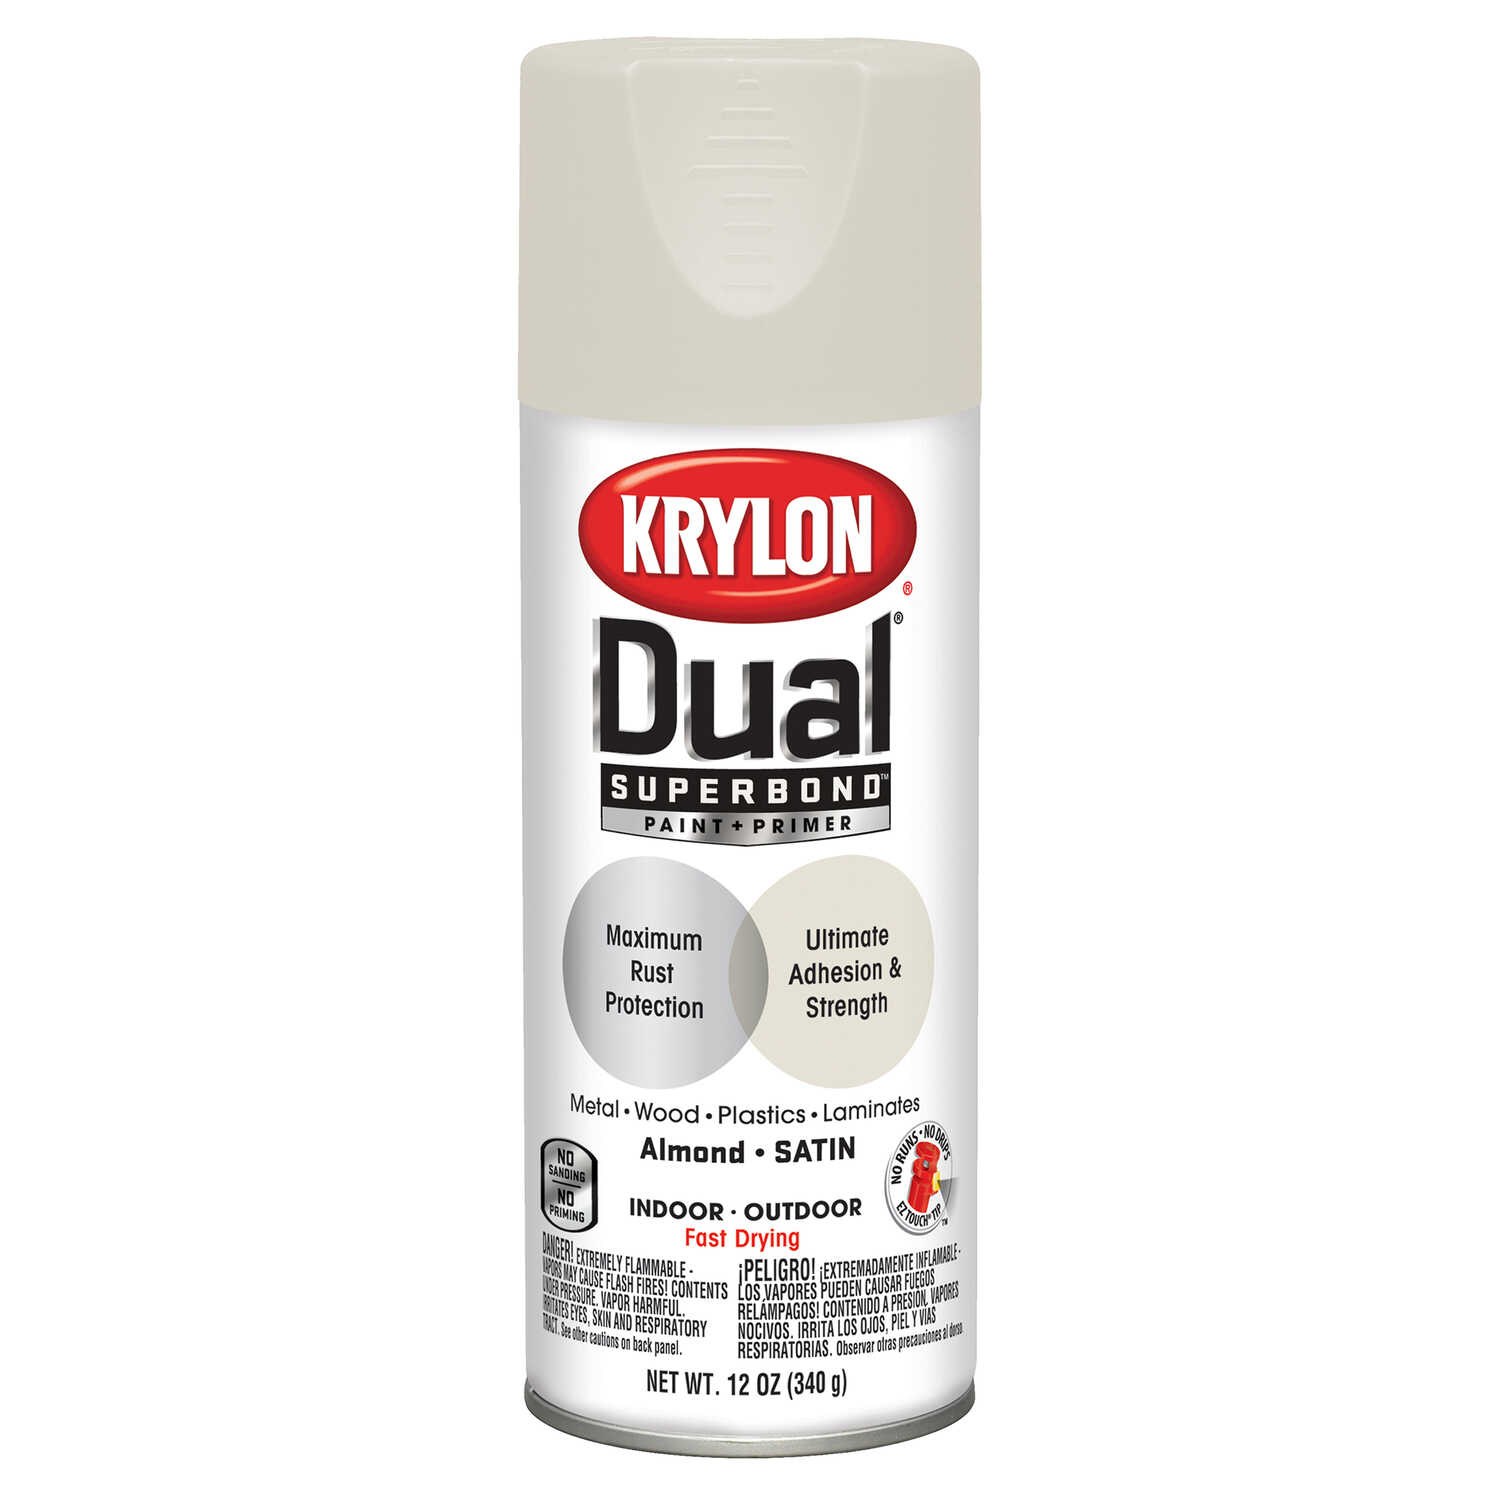 Krylon  Dual  Satin  Almond  Paint + Primer Spray Paint  12 oz.